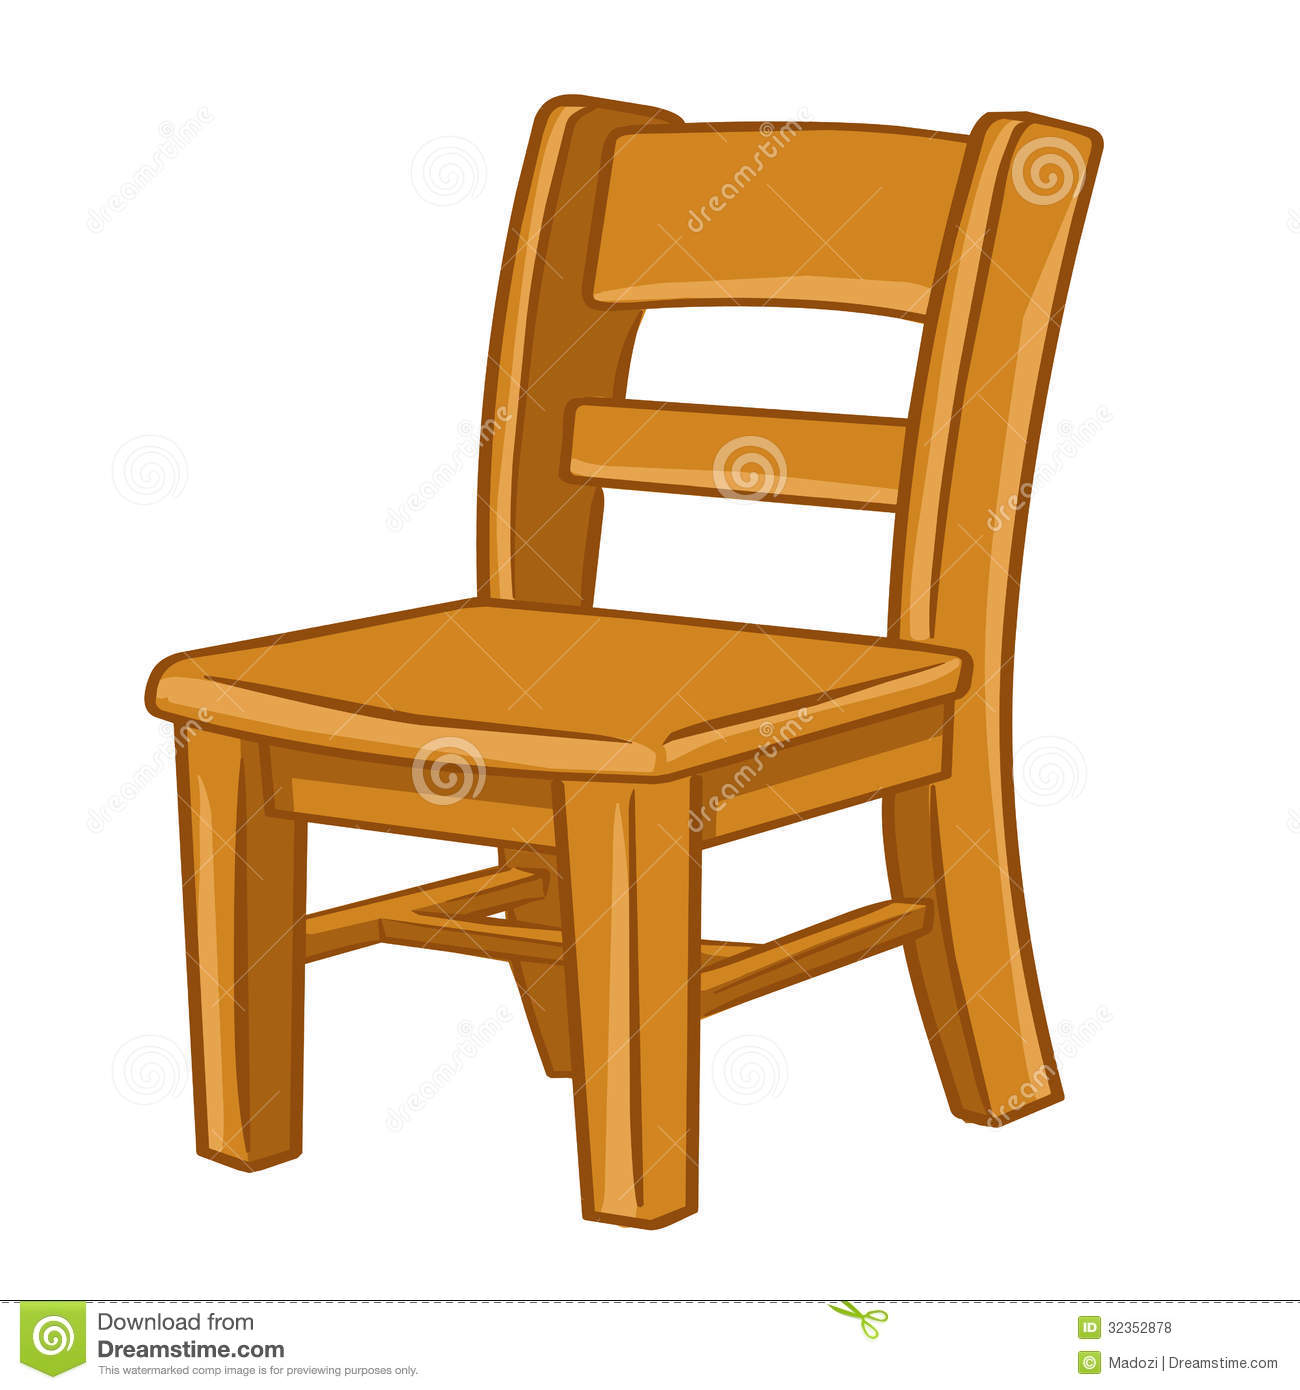 Wooden Chair Clip Art ~ Wood chair isolated illustration royalty free stock photos